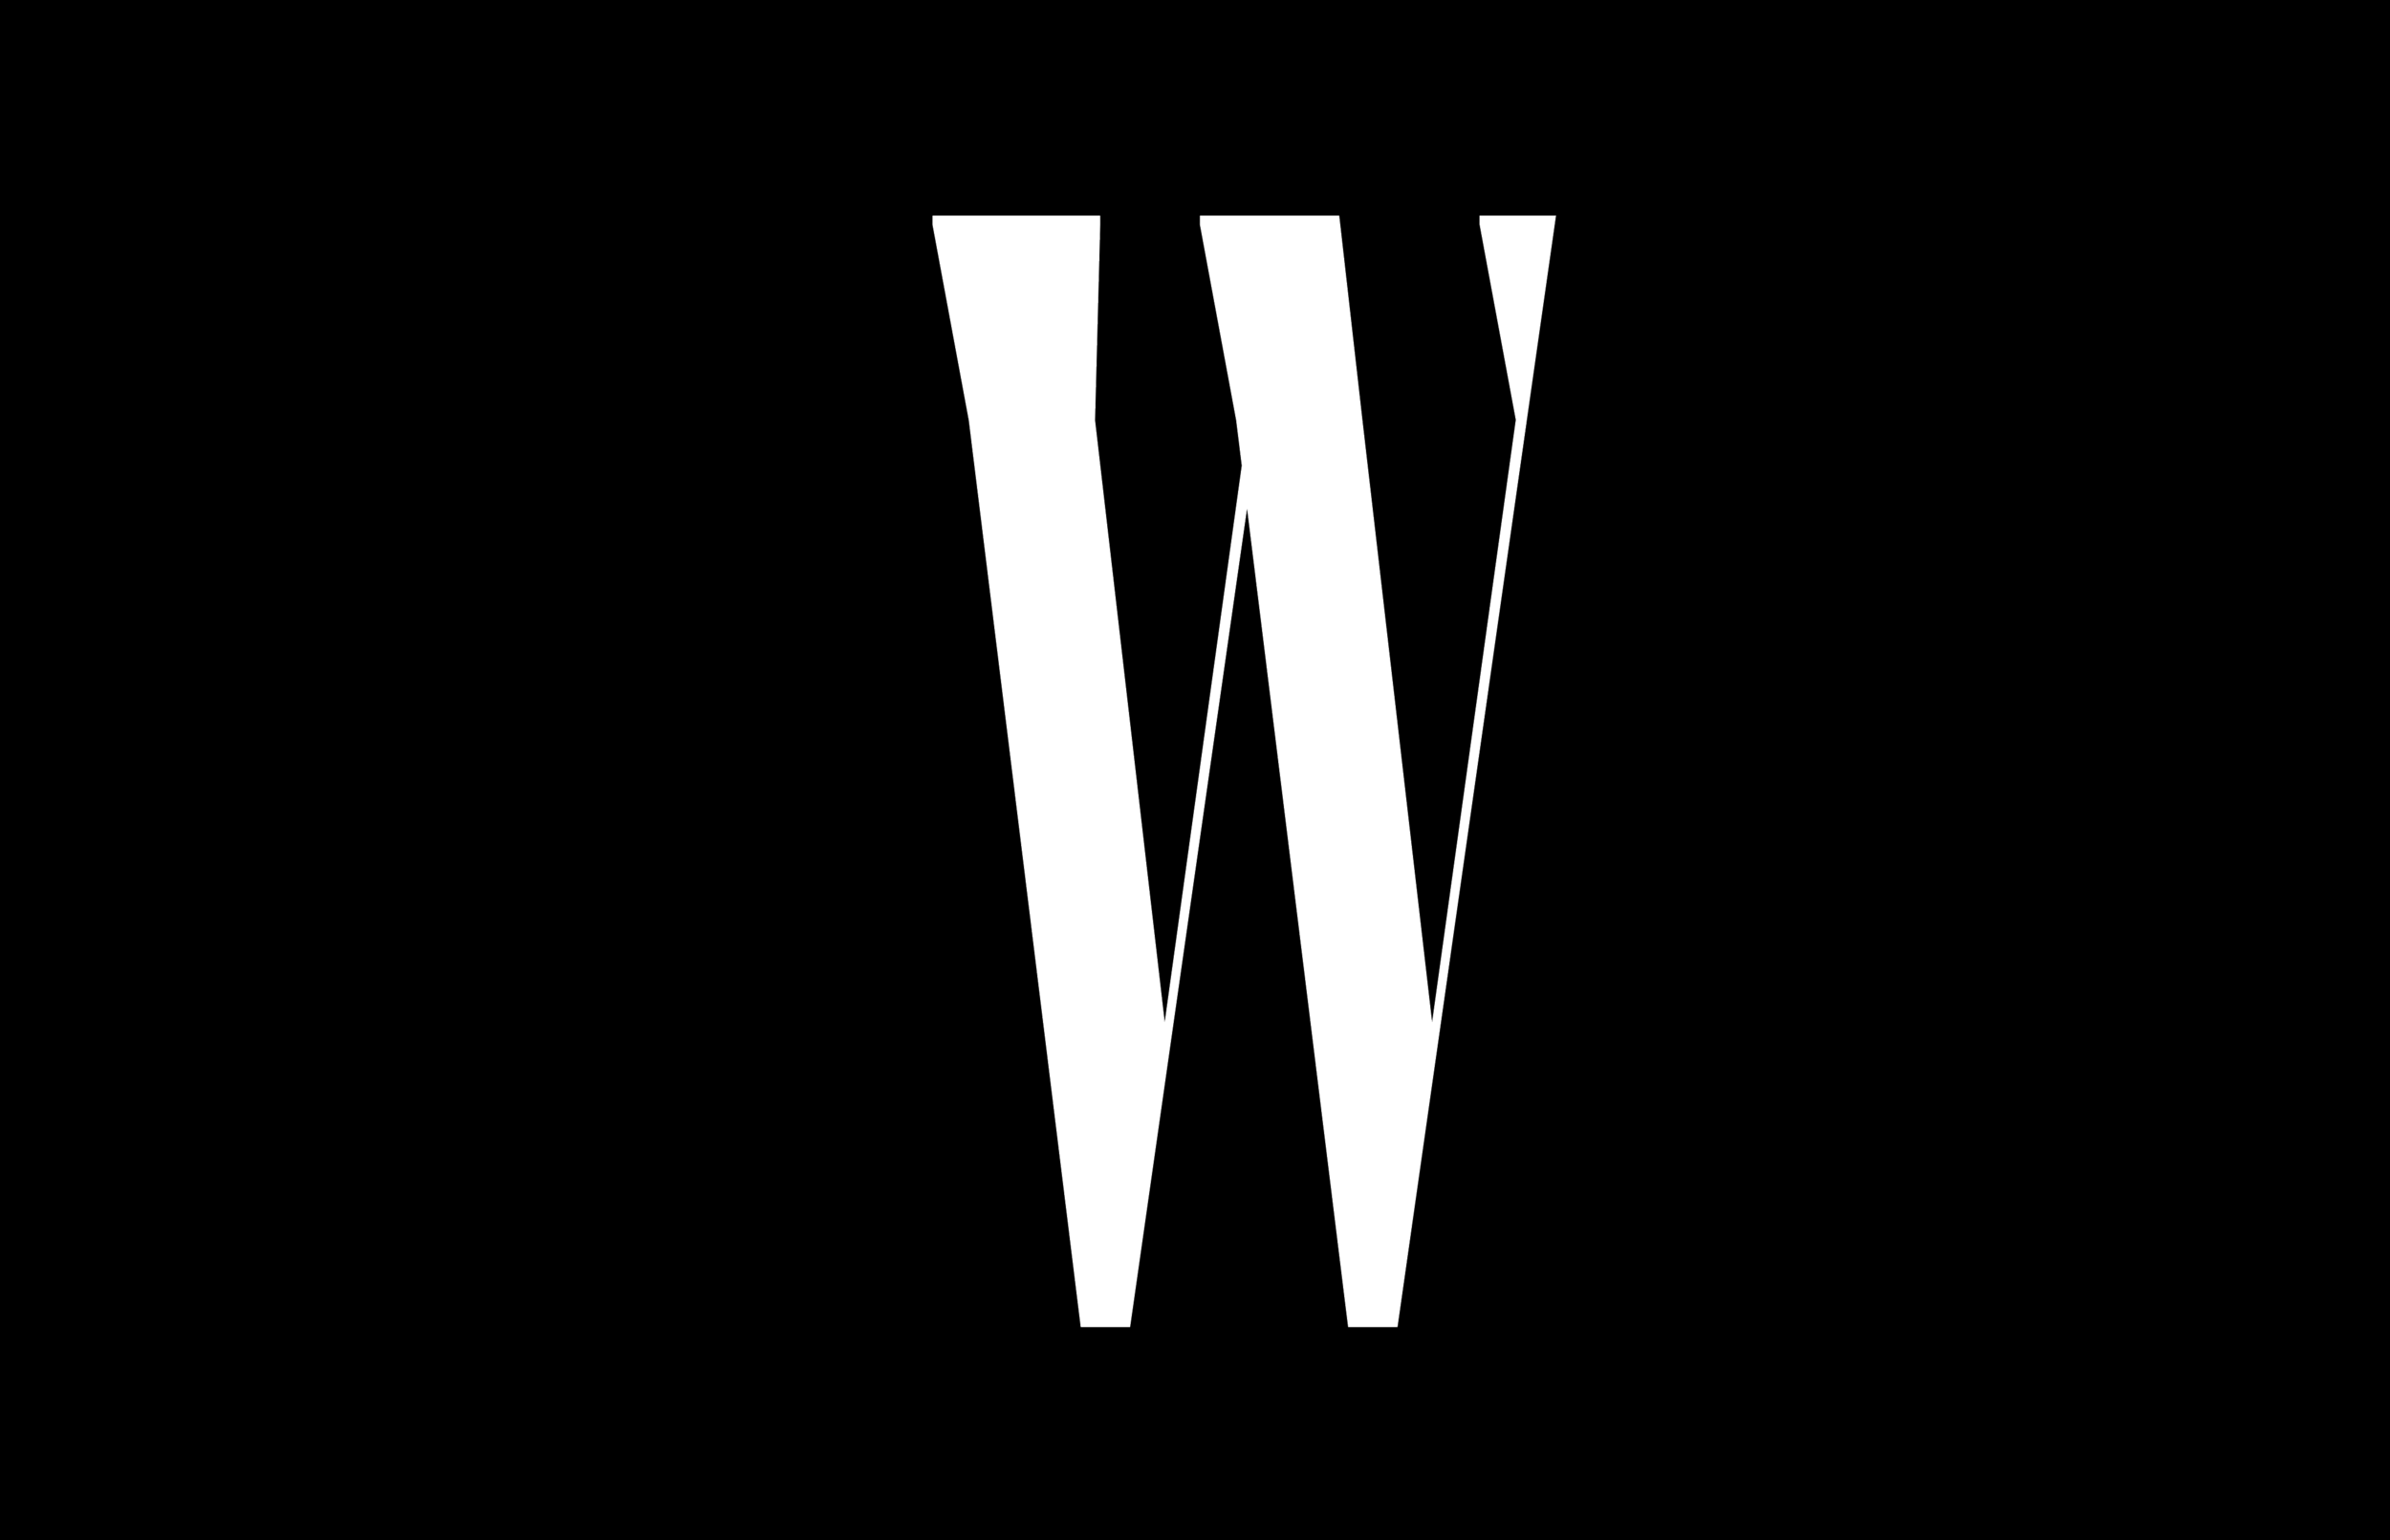 W MAGAZINE - Unbound by convention, W is an escape from the ordinary that sparks conversation and celebrates style through the lens of fashion, art, and entertainment.